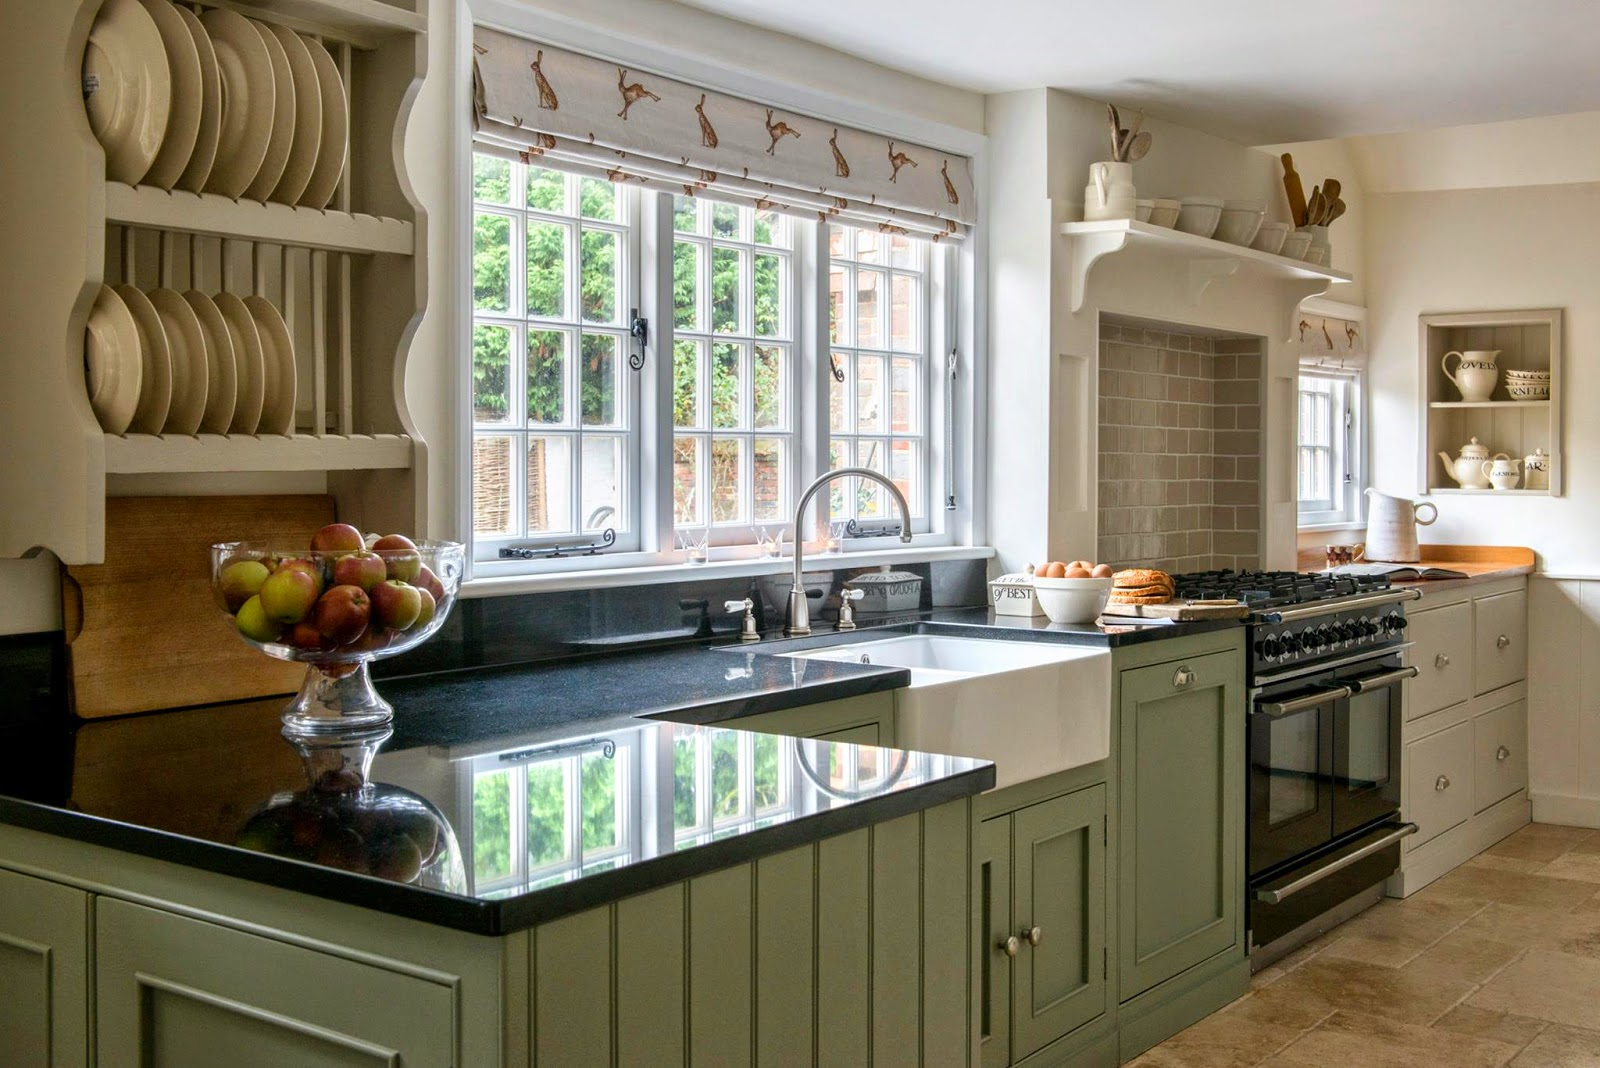 Country Style Kitchen Curtains Cost For Cabinets Modern And Colour Scheme